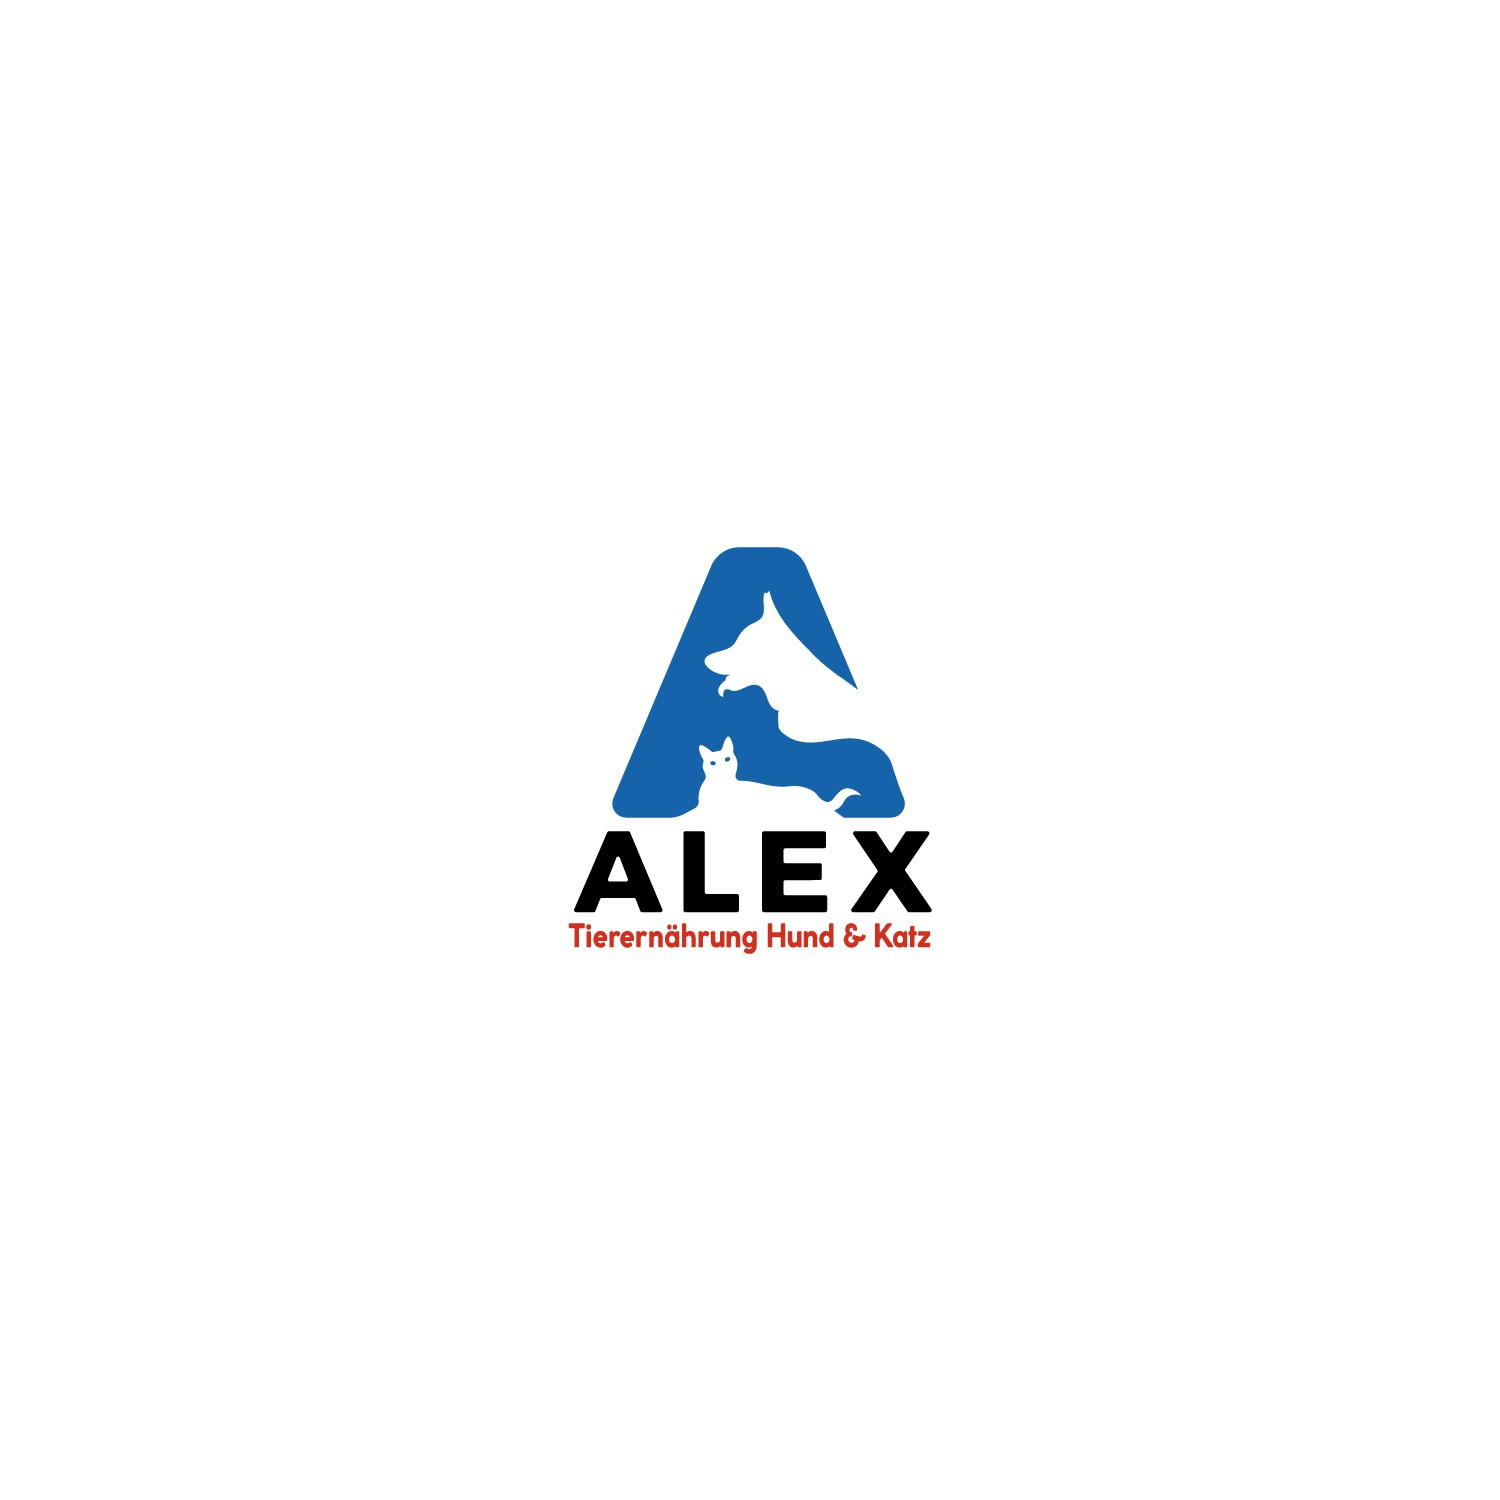 Logo that appeals to pet owners of dogs and cats